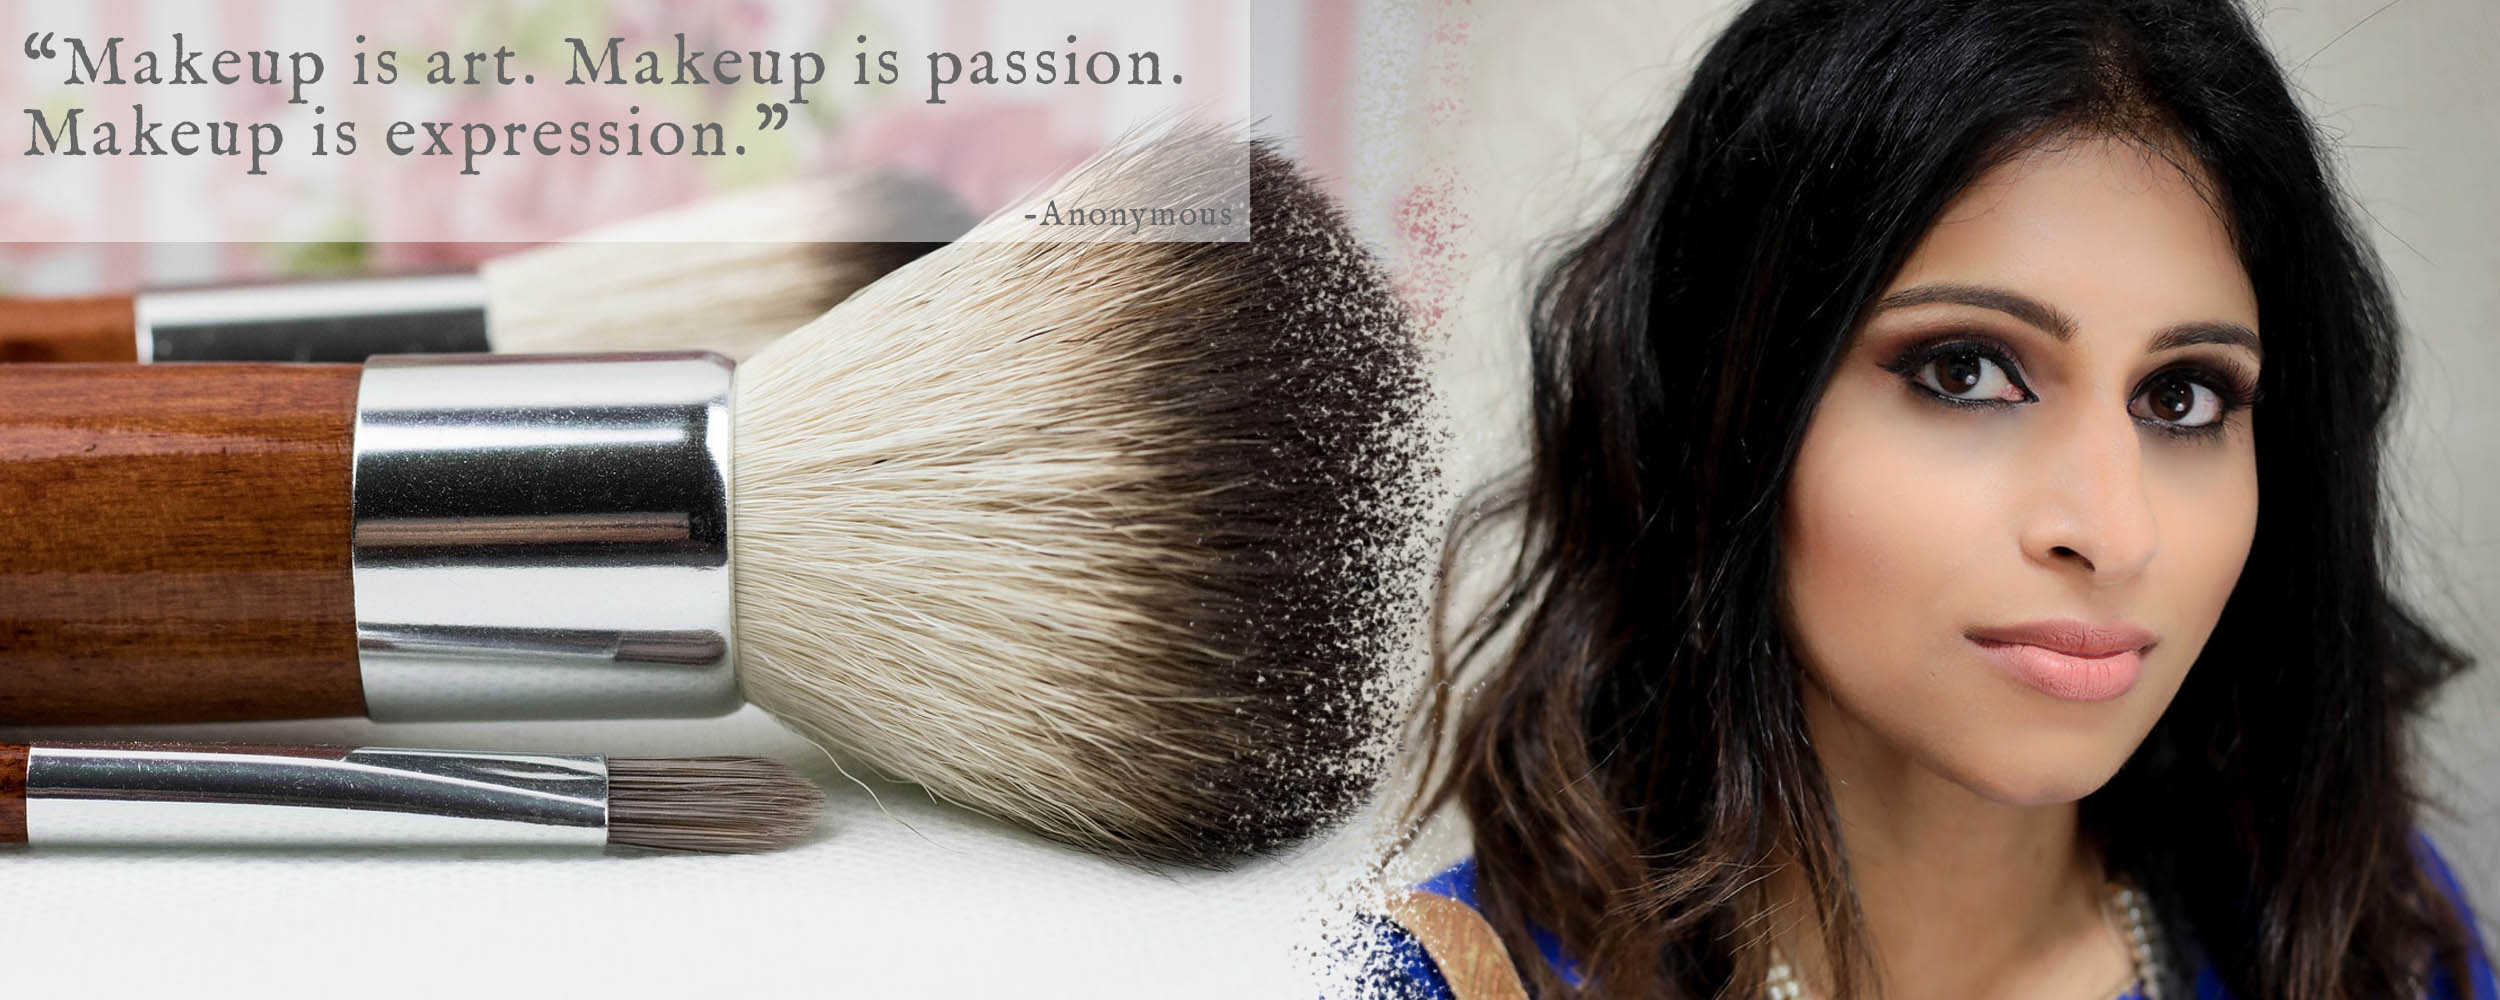 ami makeup brush 2